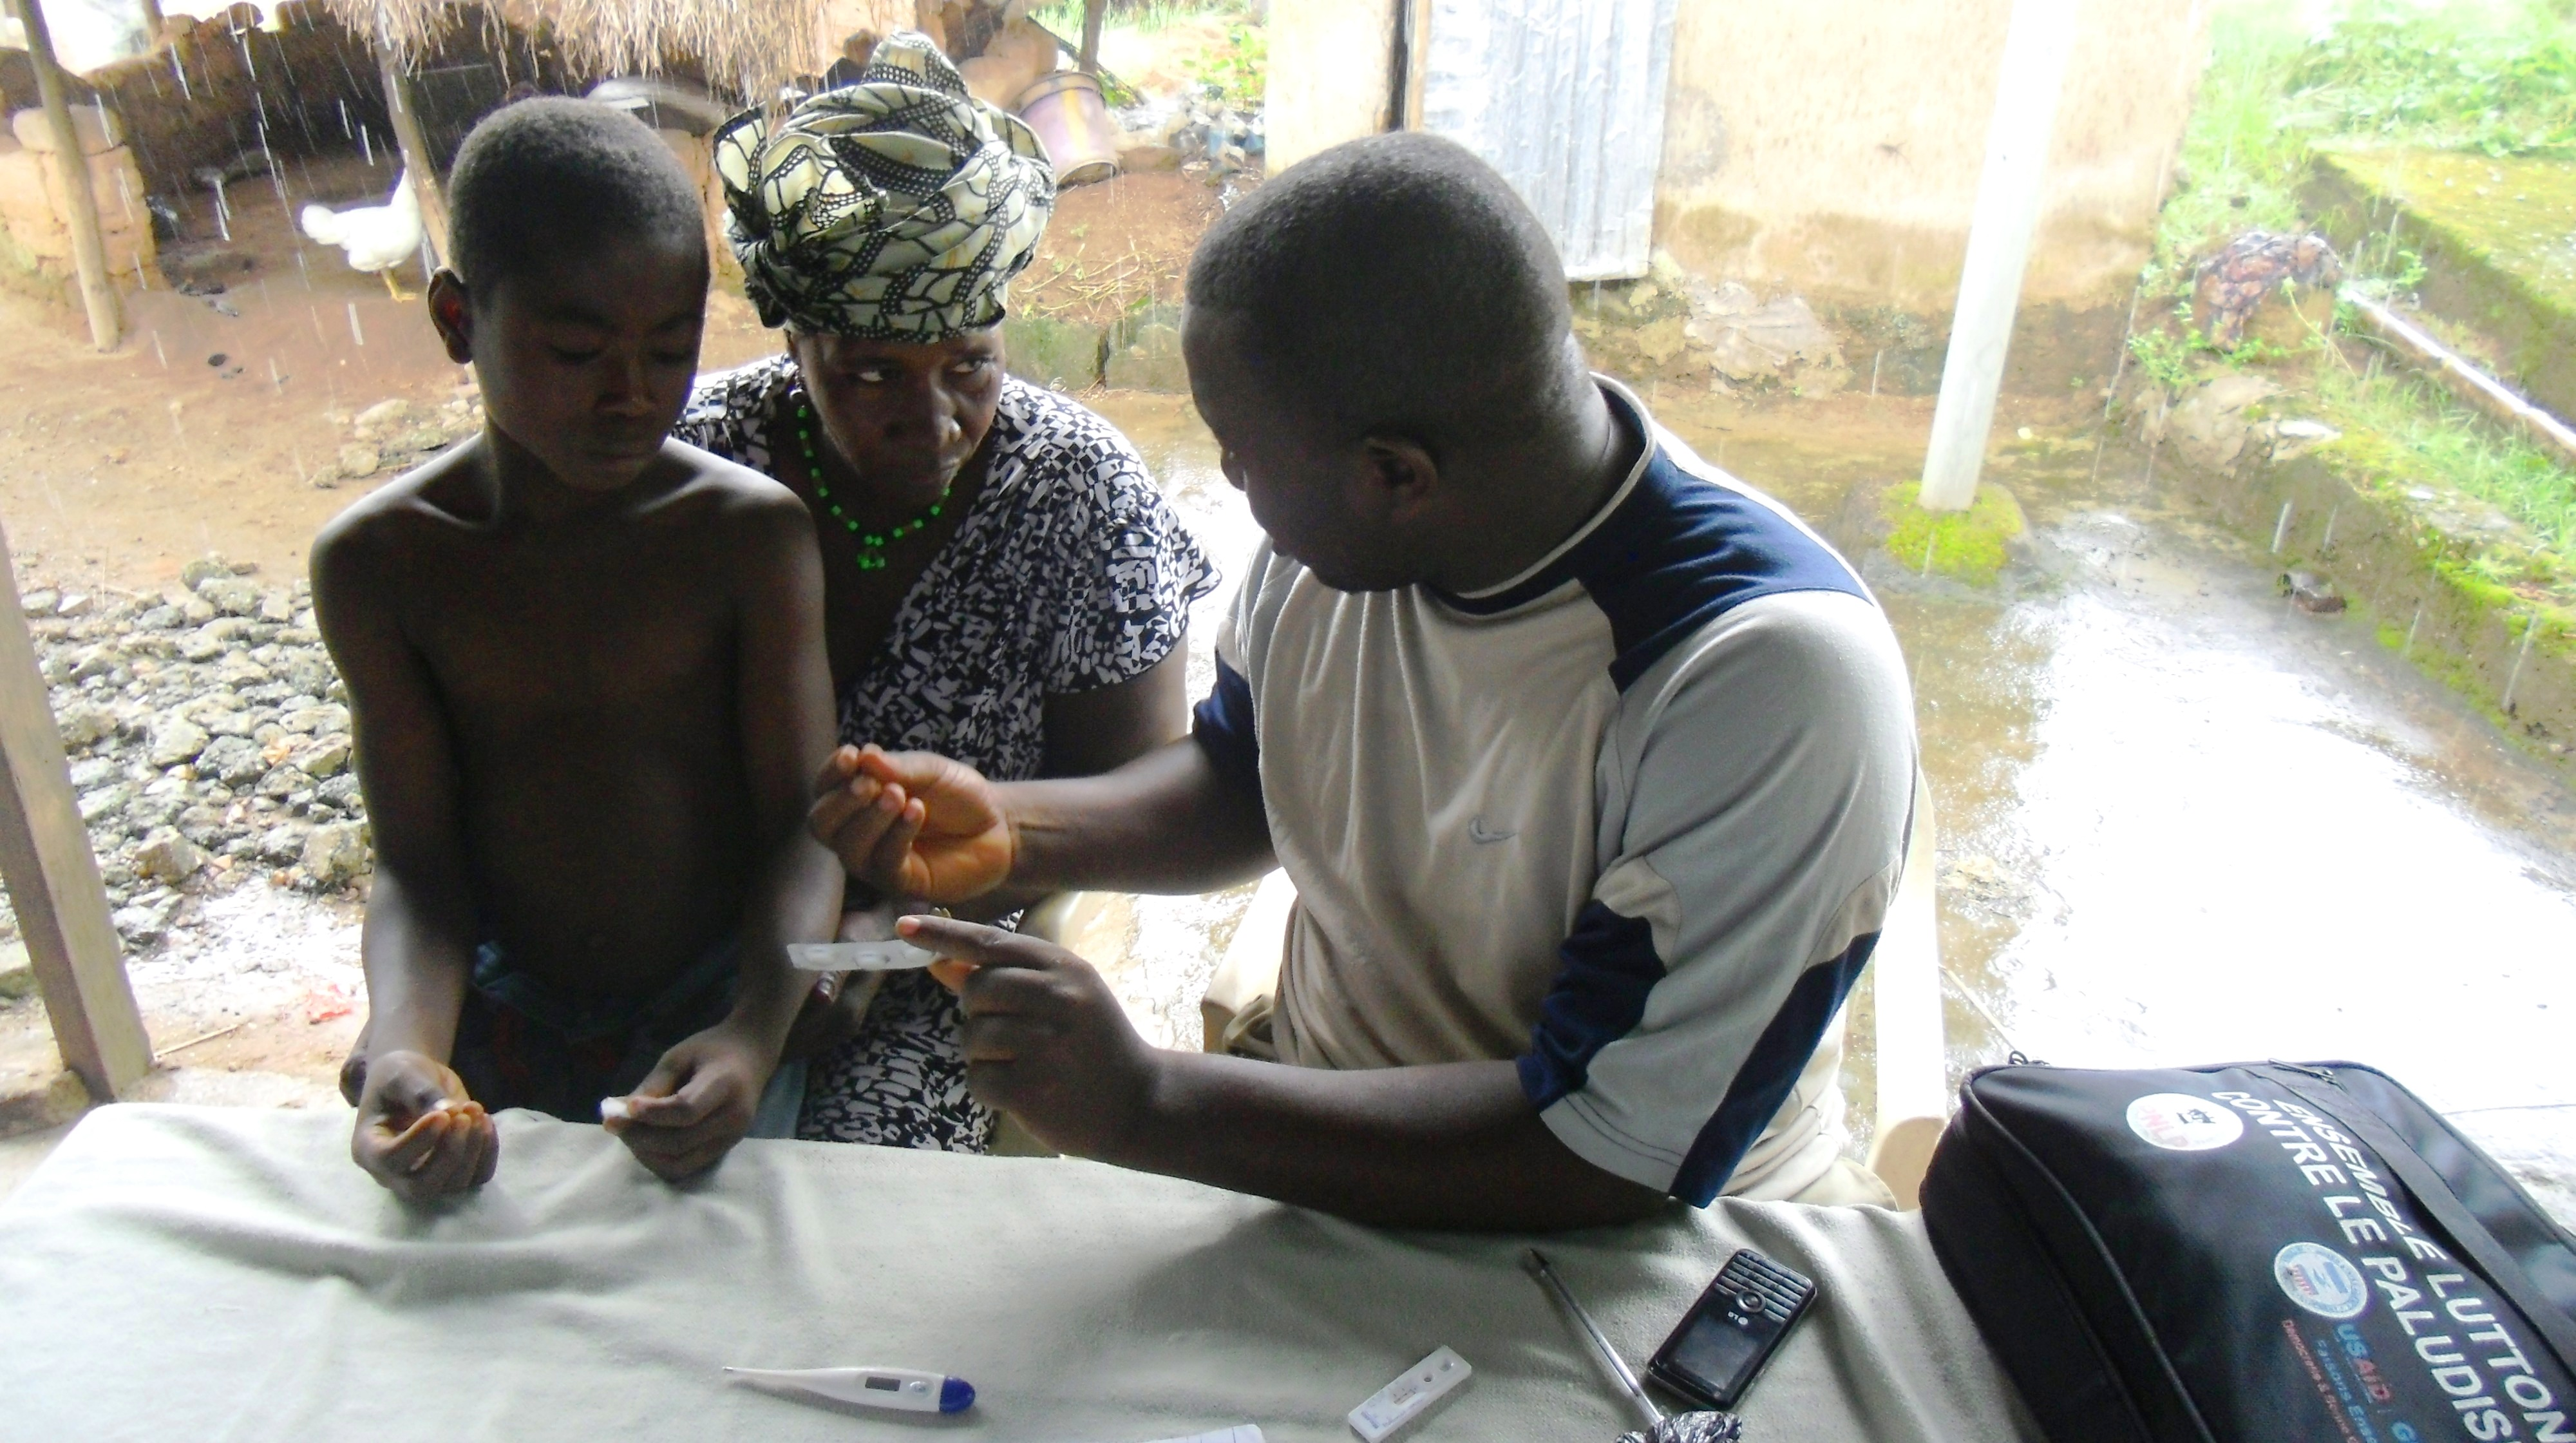 A health worker tests a boy for malaria while his mother listens.